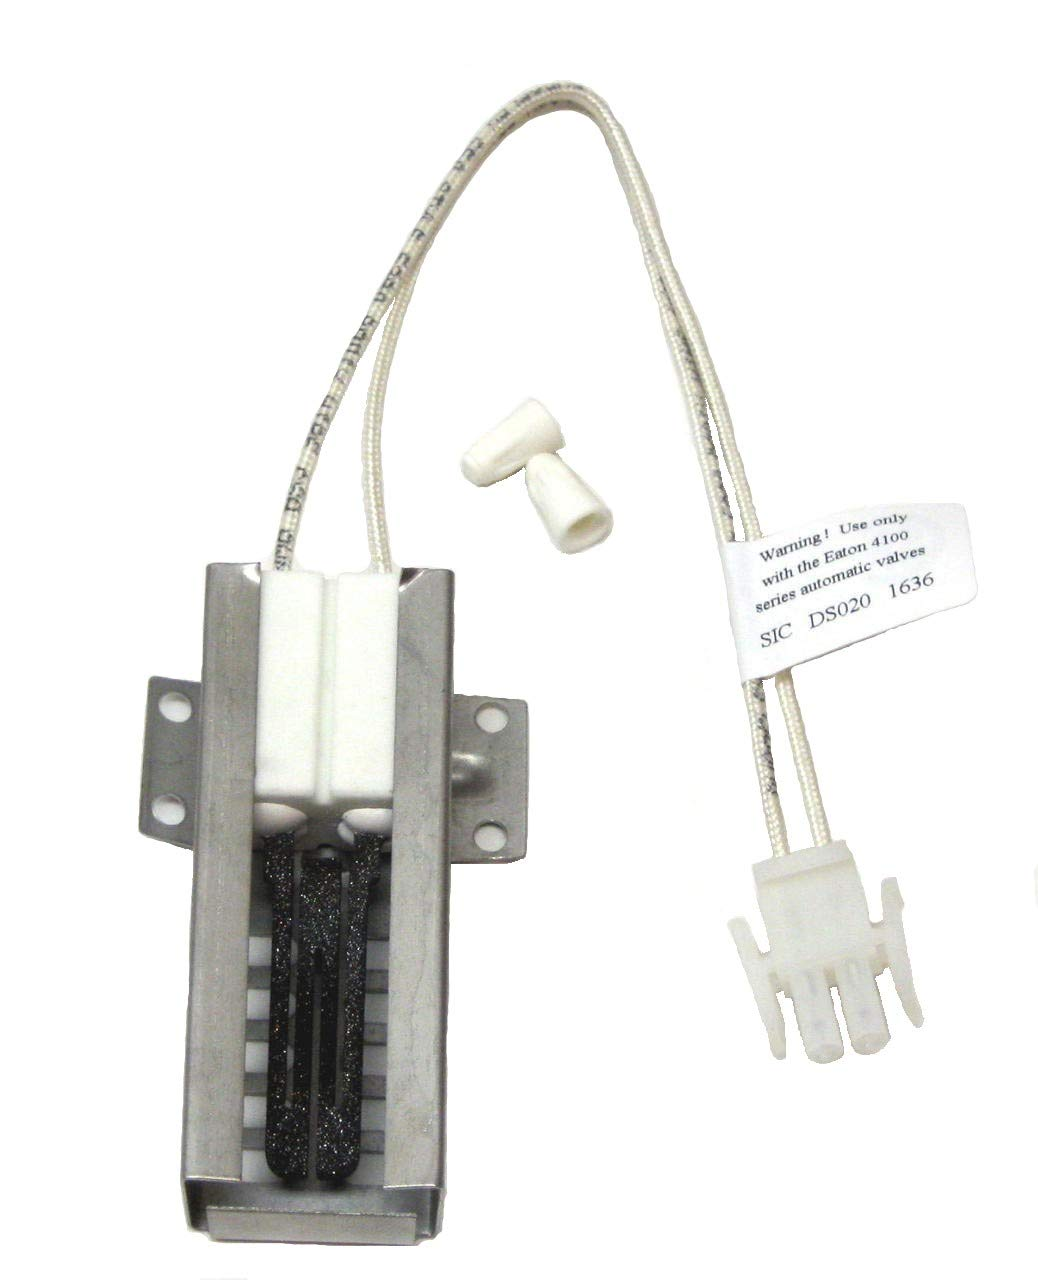 WB13K21 GE Compatible Replacement Oven Range Flat Igniter Norton 501A 229C5216P001 Ignitor